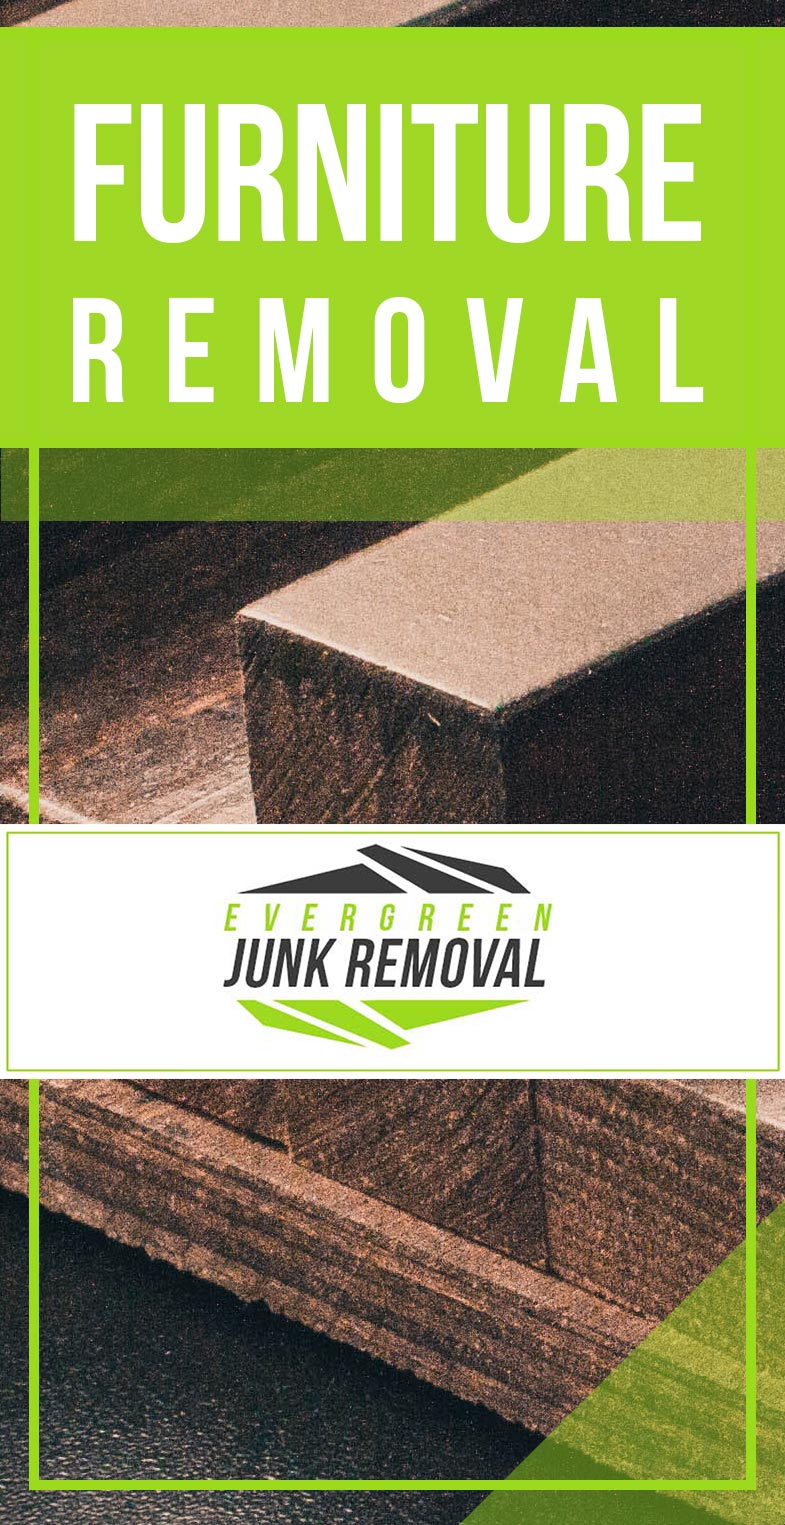 Winters Furniture Removal